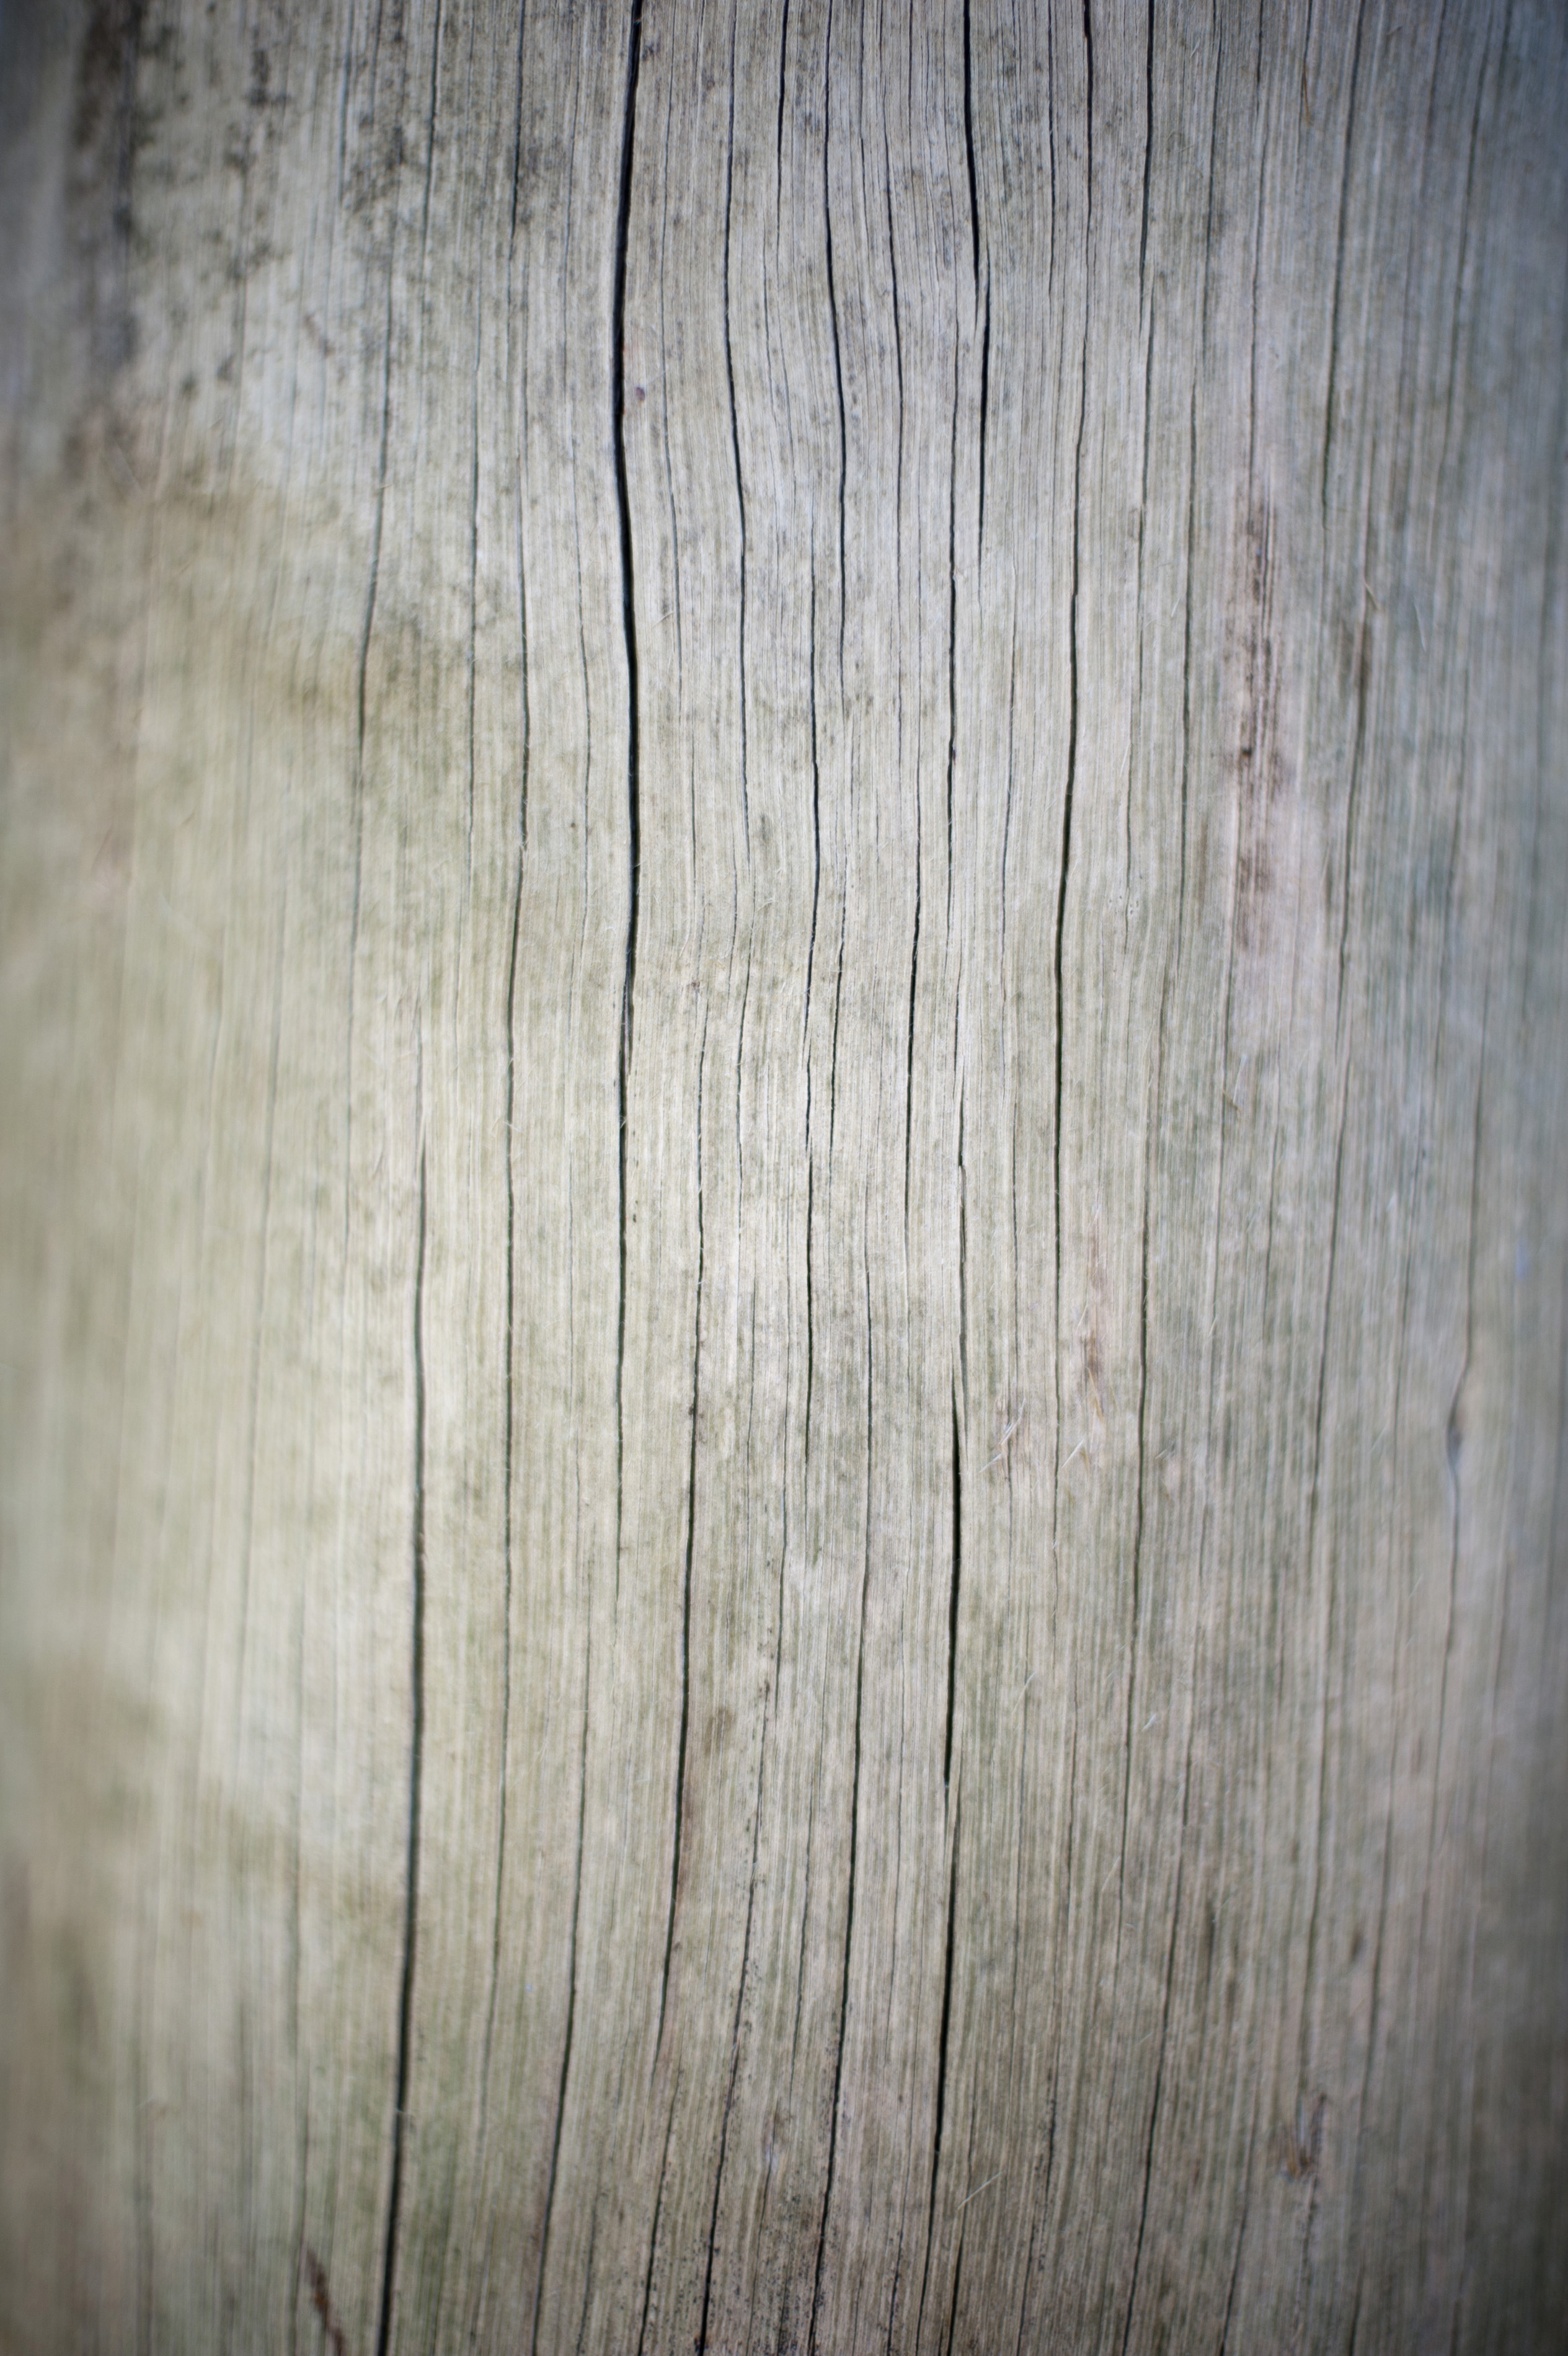 Image Collections Wood Dried cracked wood 2529x3800